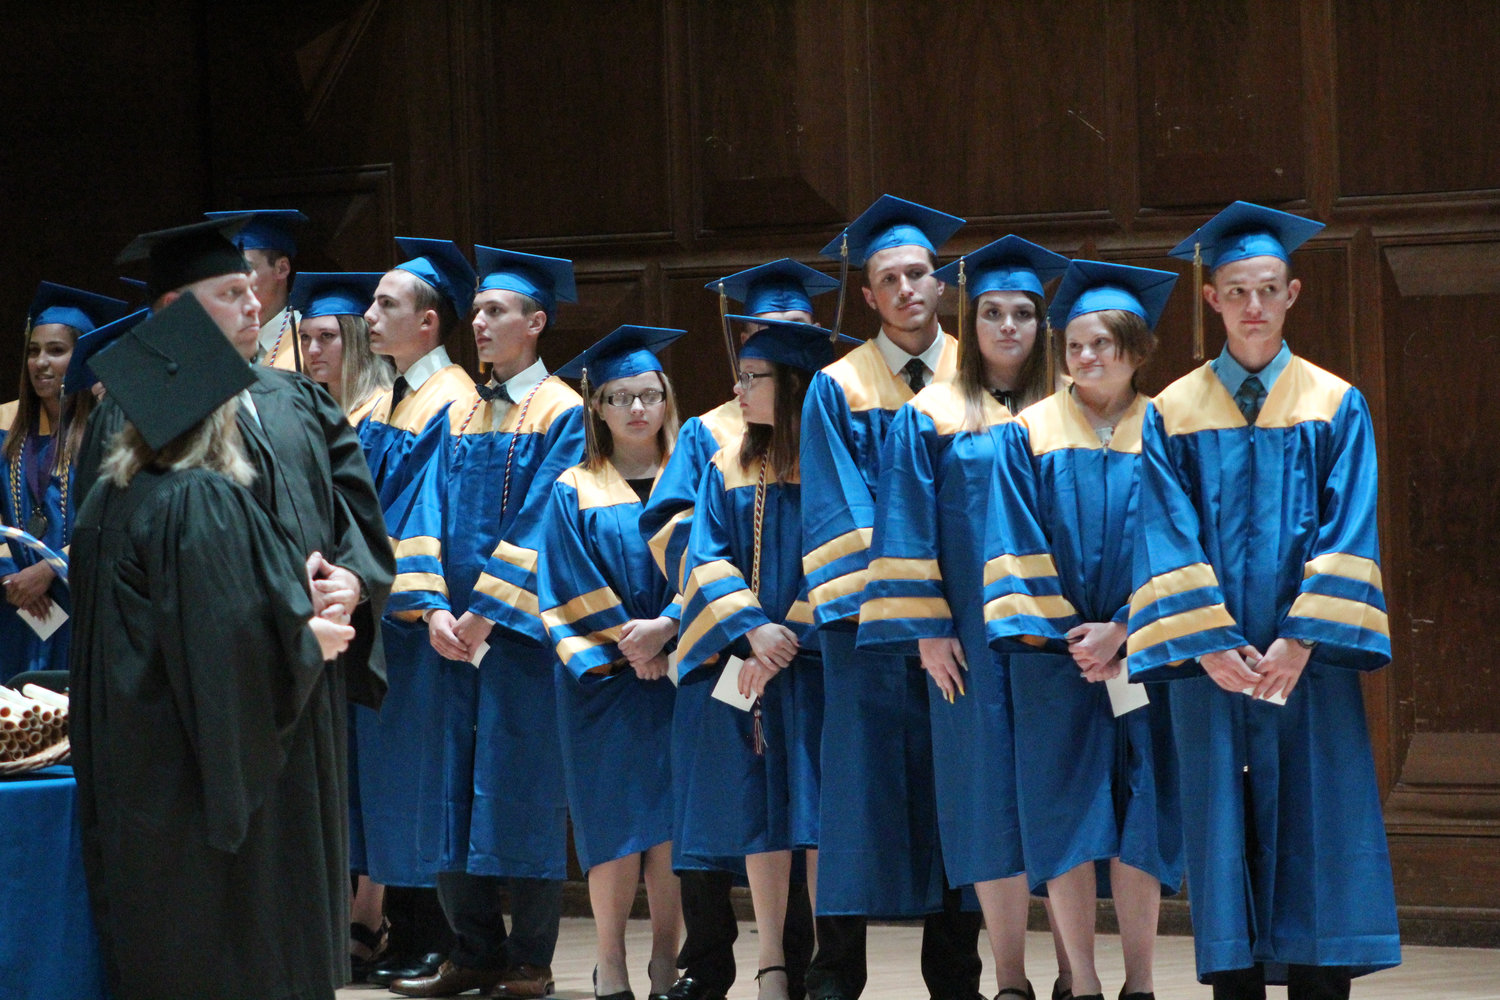 MAHS seniors line up to receive their diplomas during graduation on June 4.